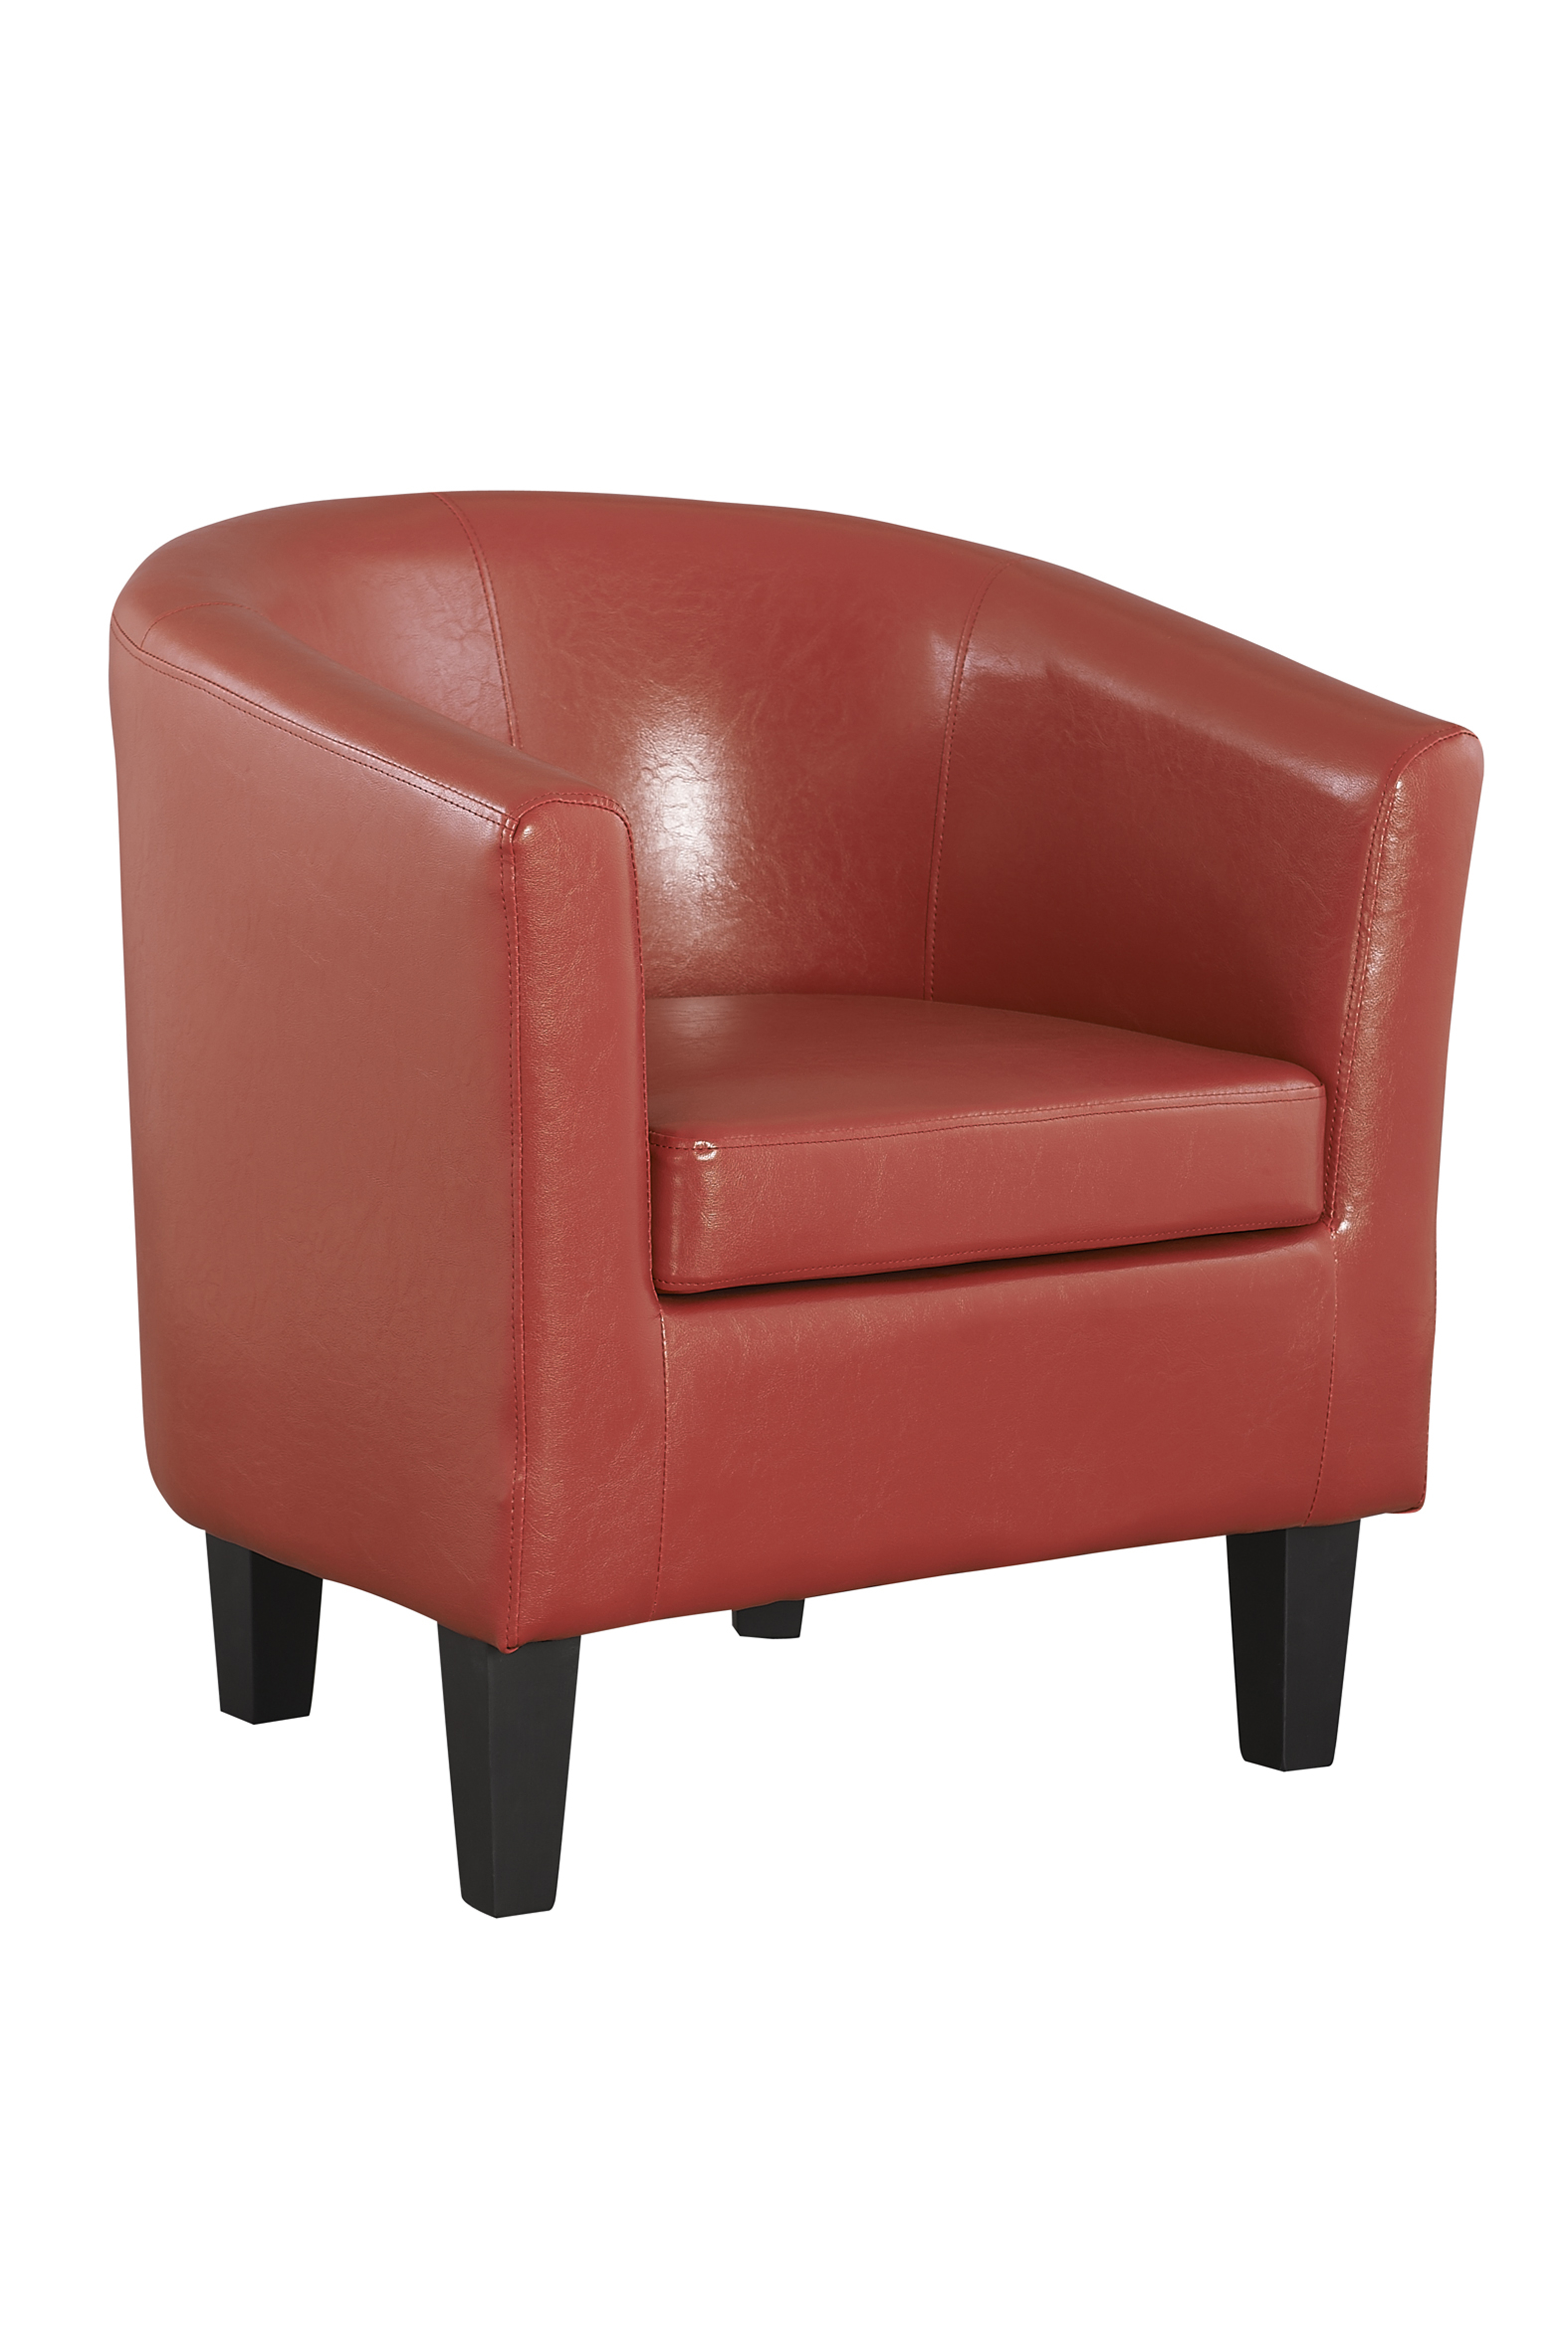 COLBY RED TUB CHAIR